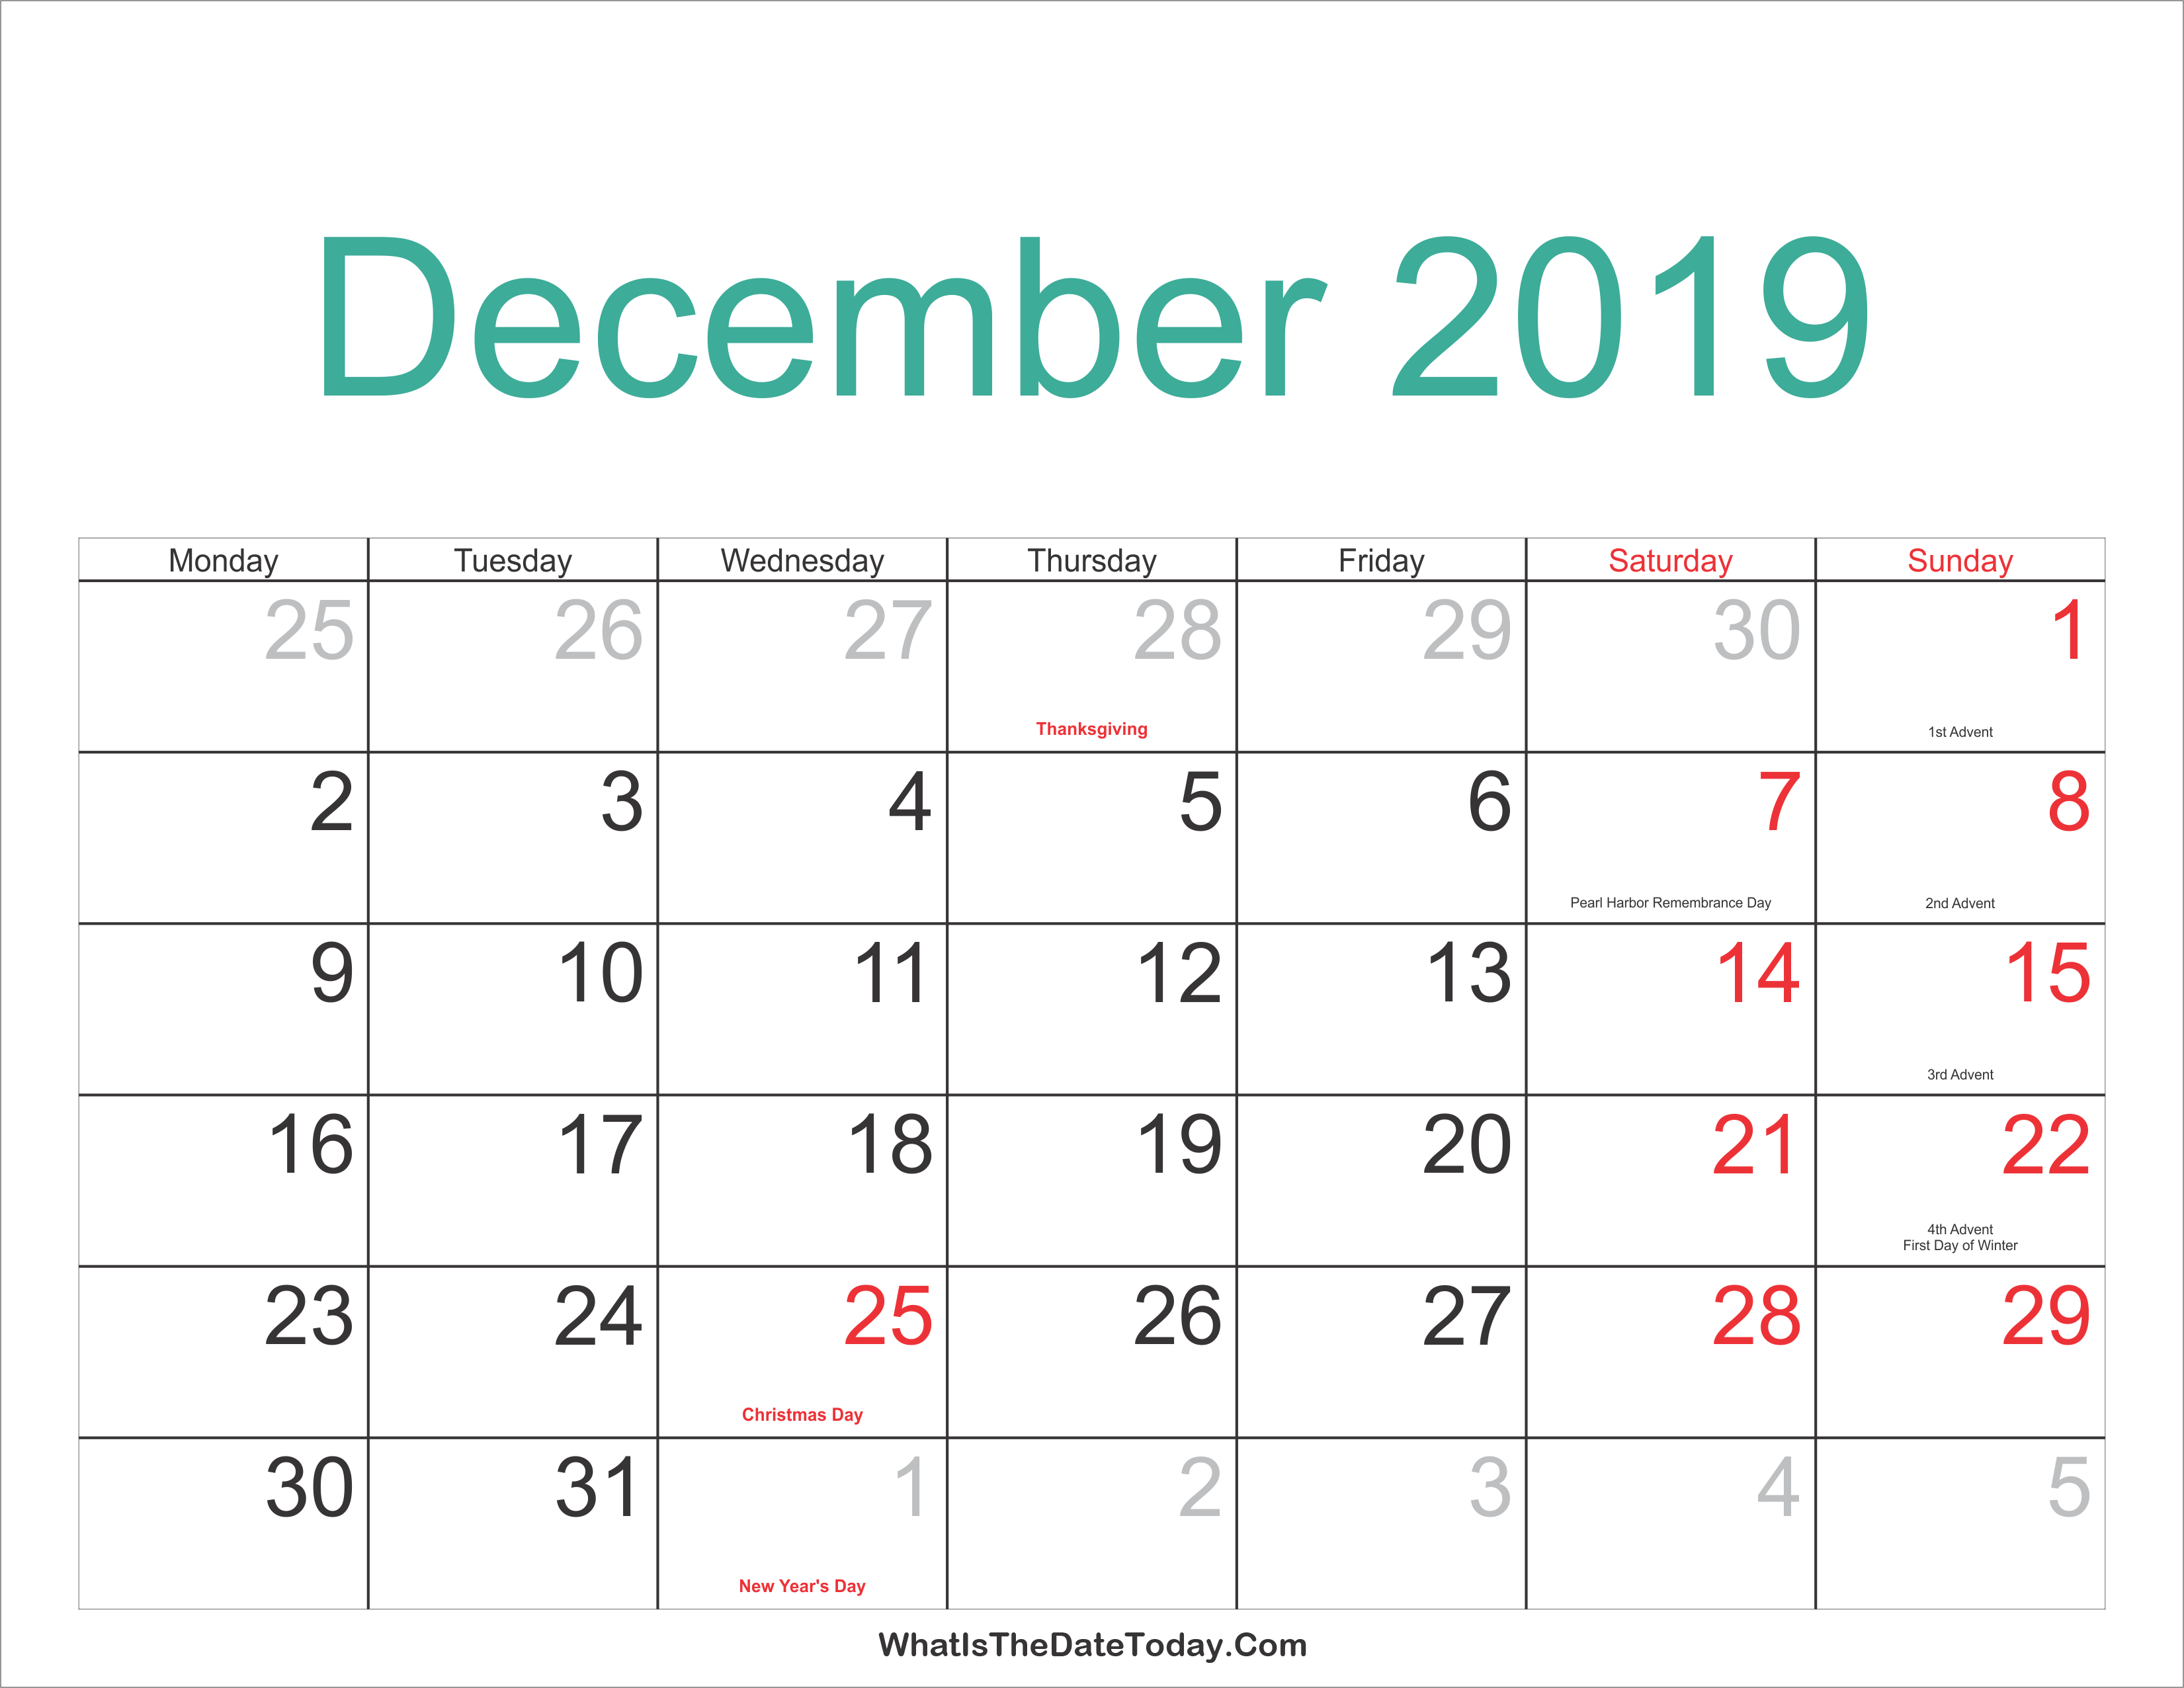 December 2019 Calendar Printable With Holidays Whatisthedatetoday Com